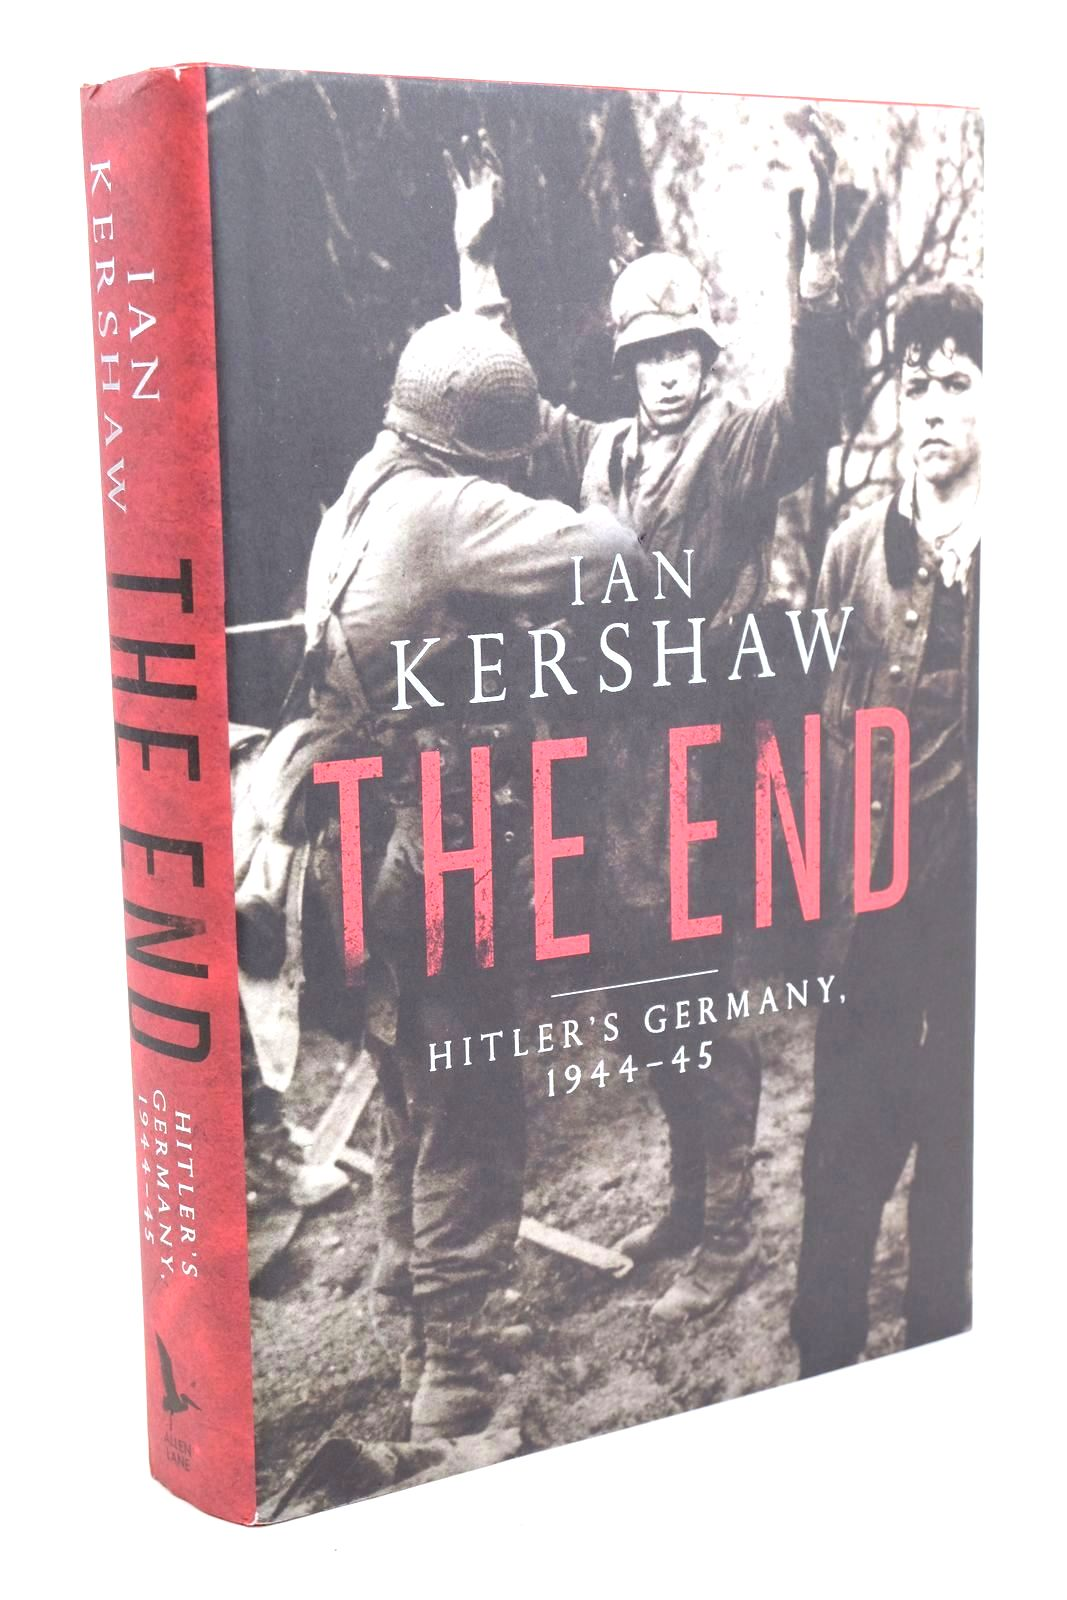 Photo of THE END HITLER'S GERMANY 1944-45 written by Kershaw, Ian published by Allen Lane (STOCK CODE: 1320161)  for sale by Stella & Rose's Books